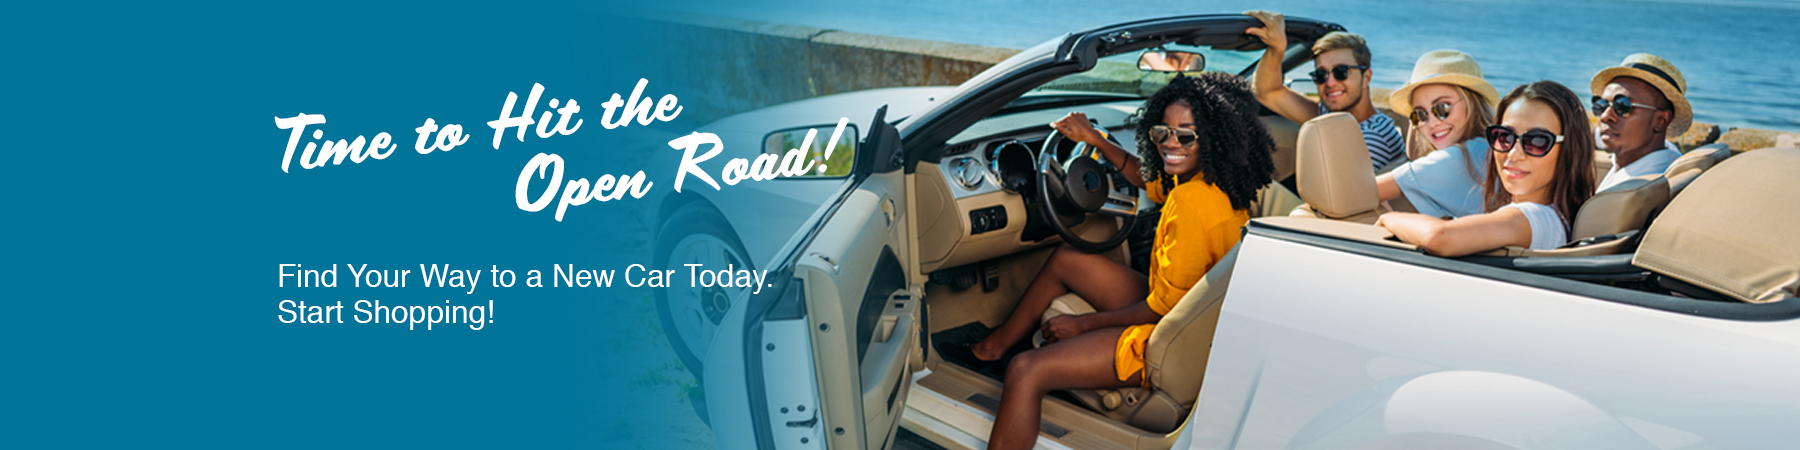 Time to Hit the Open Road. Find your way to a new car today. Start Shopping!